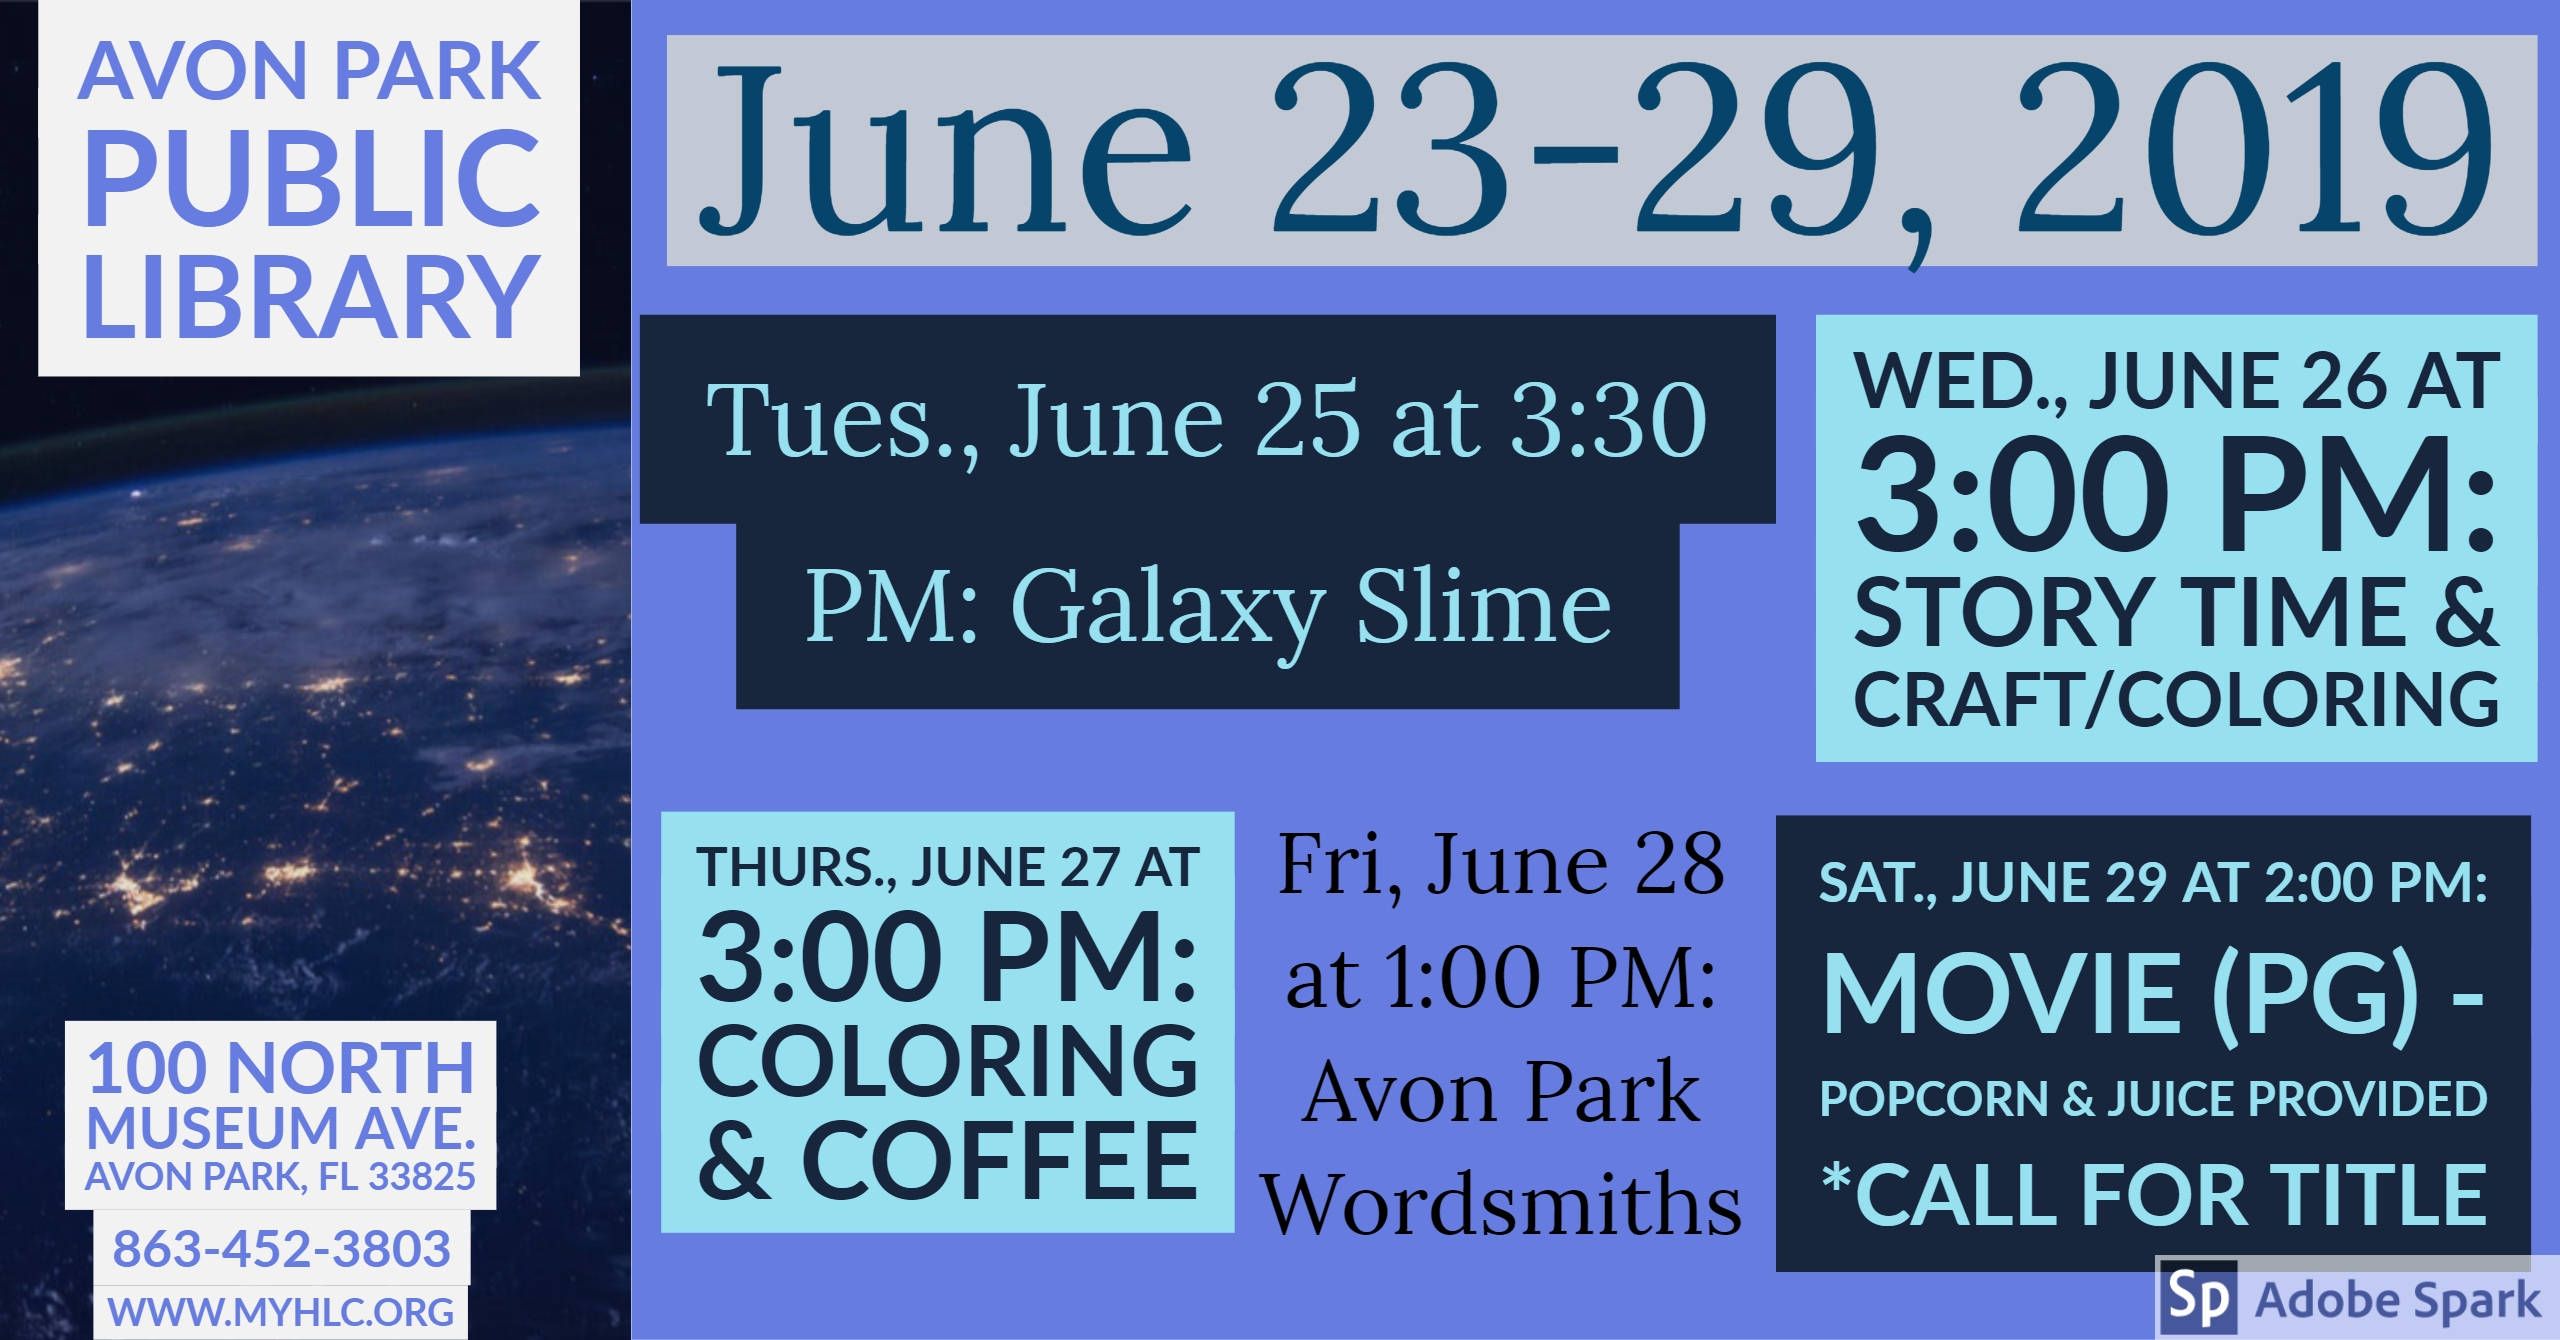 APL Events for June 23-29